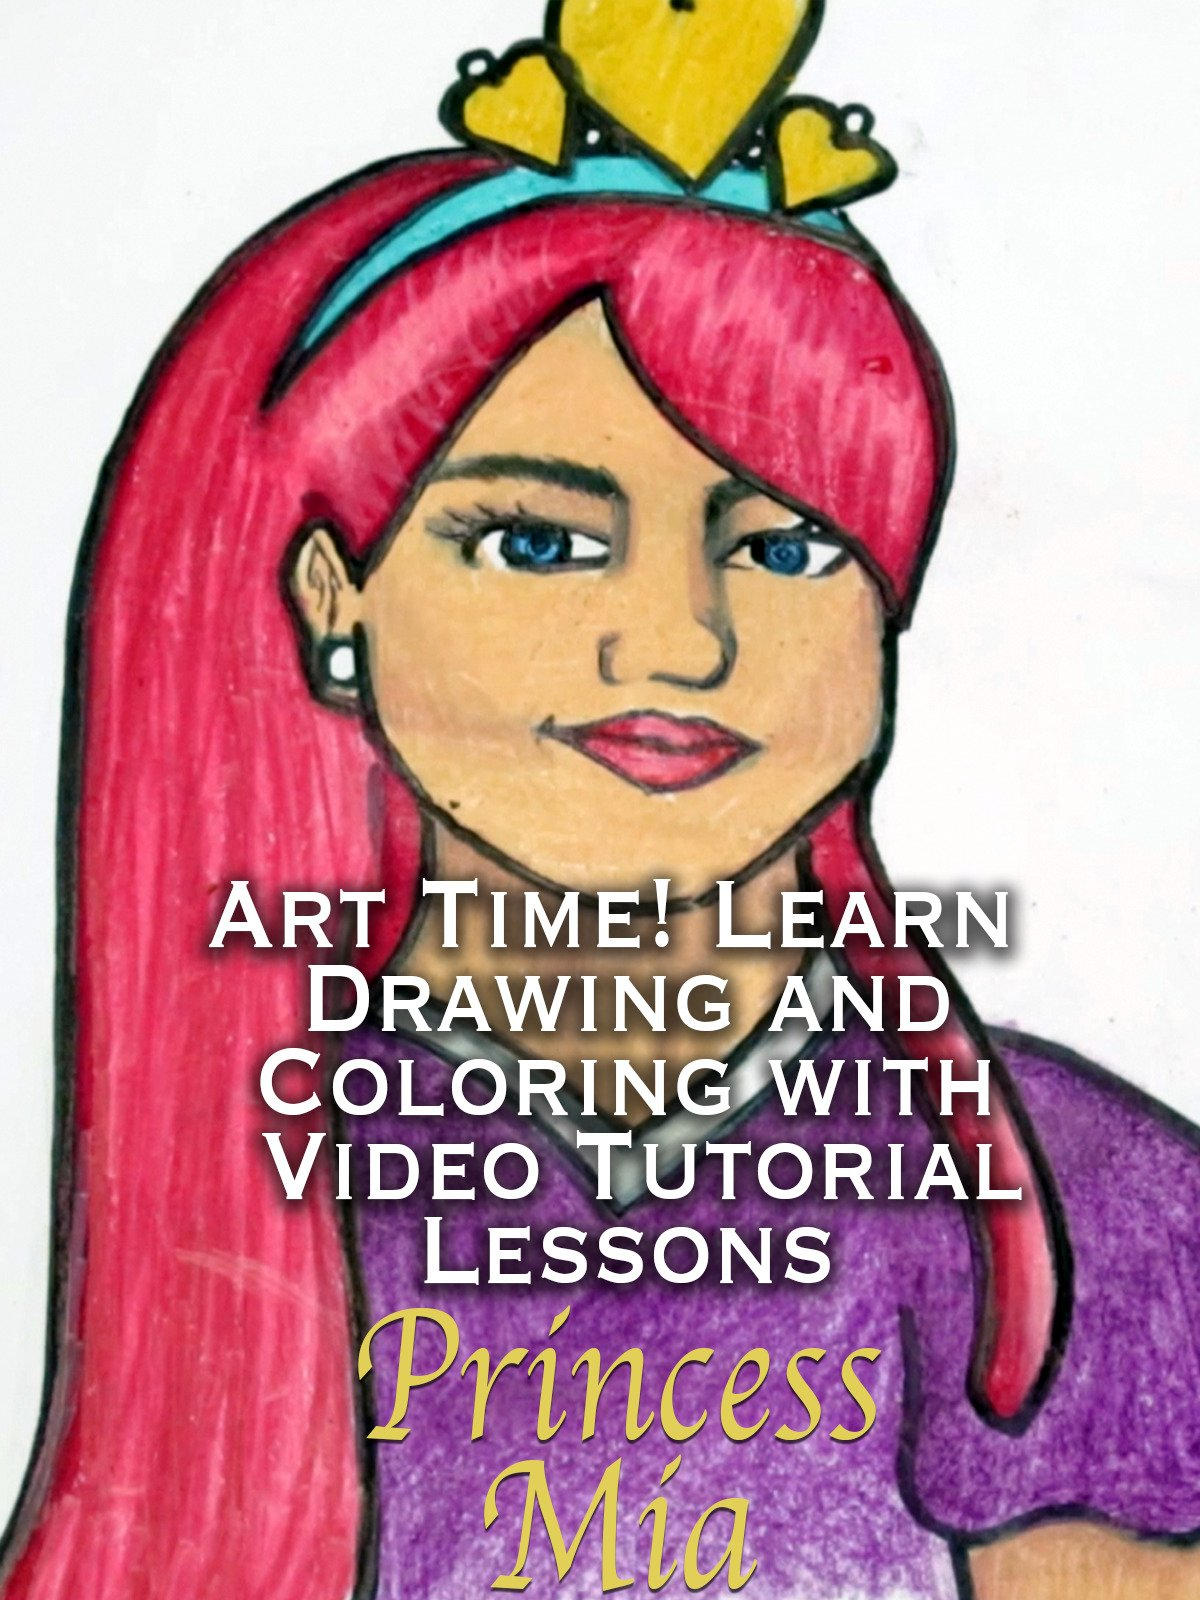 Art Time! Learn Drawing and Coloring with Video Tutorial Lessons Princess Mia